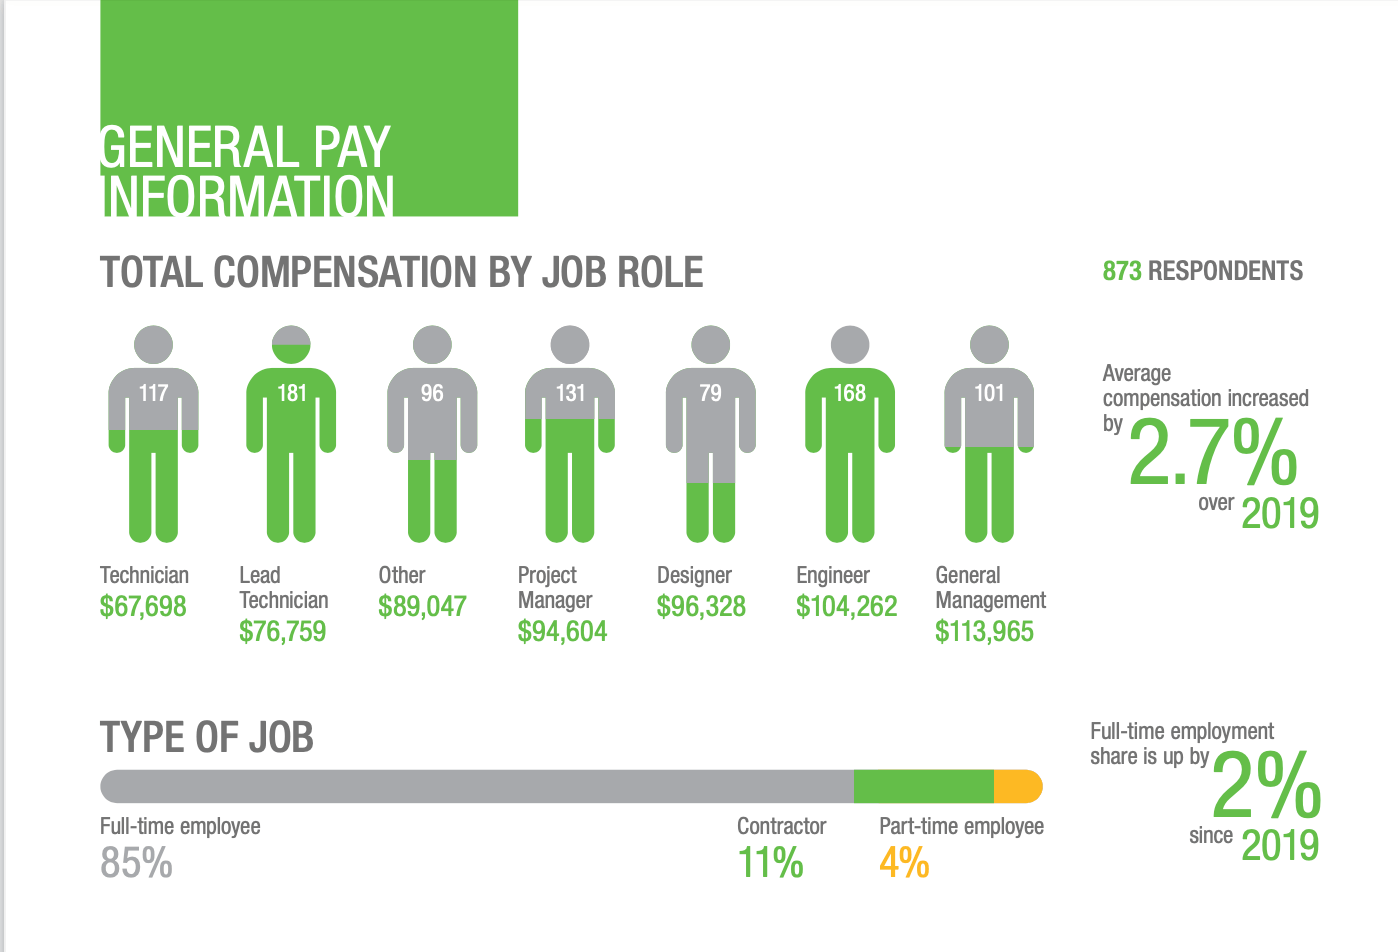 2020 Compensation by Job Role Including Network or Cable Technician, Project Manager, Designer, Engineer, and Manager